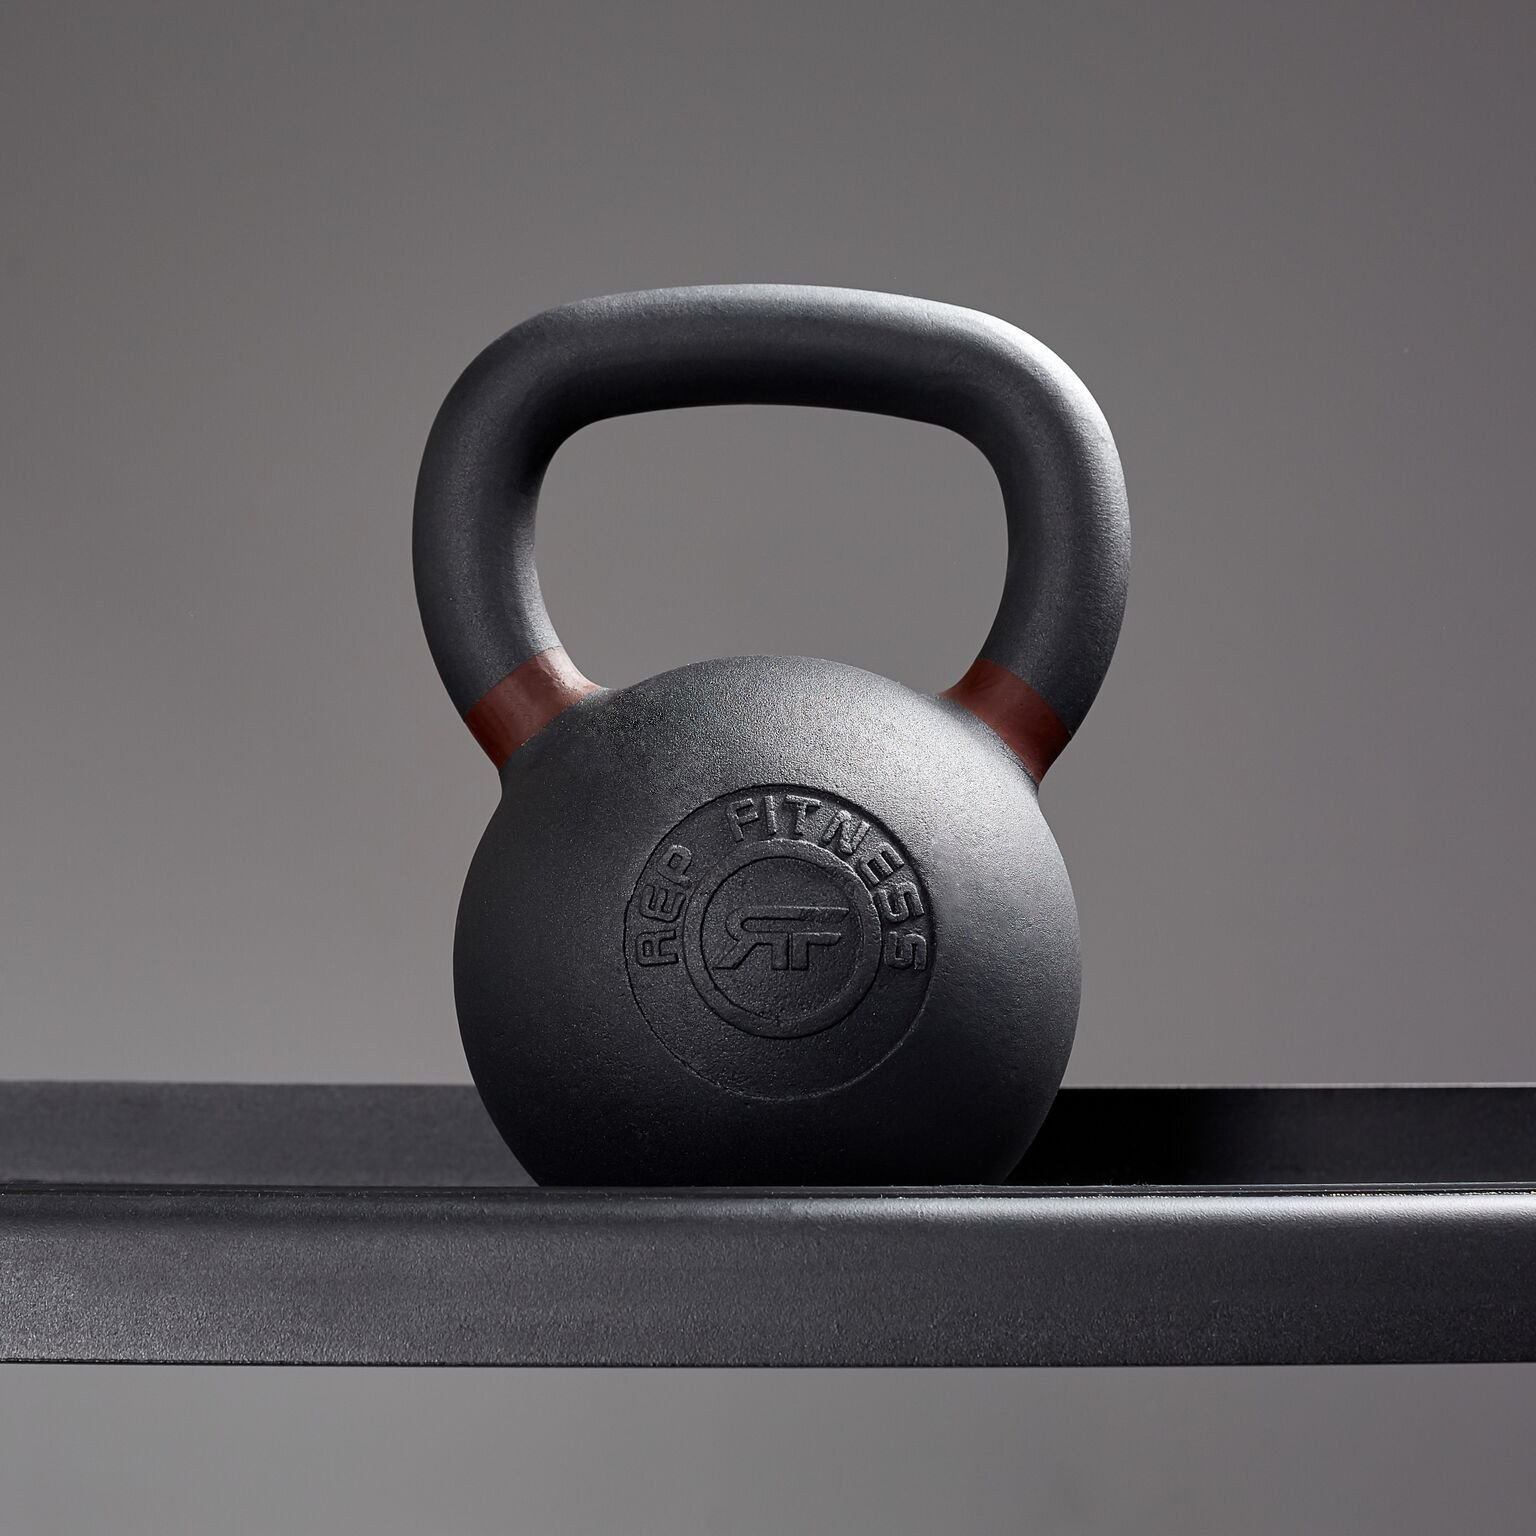 Rep 18 kg Kettlebell for Strength and Conditioning by Rep Fitness (Image #2)